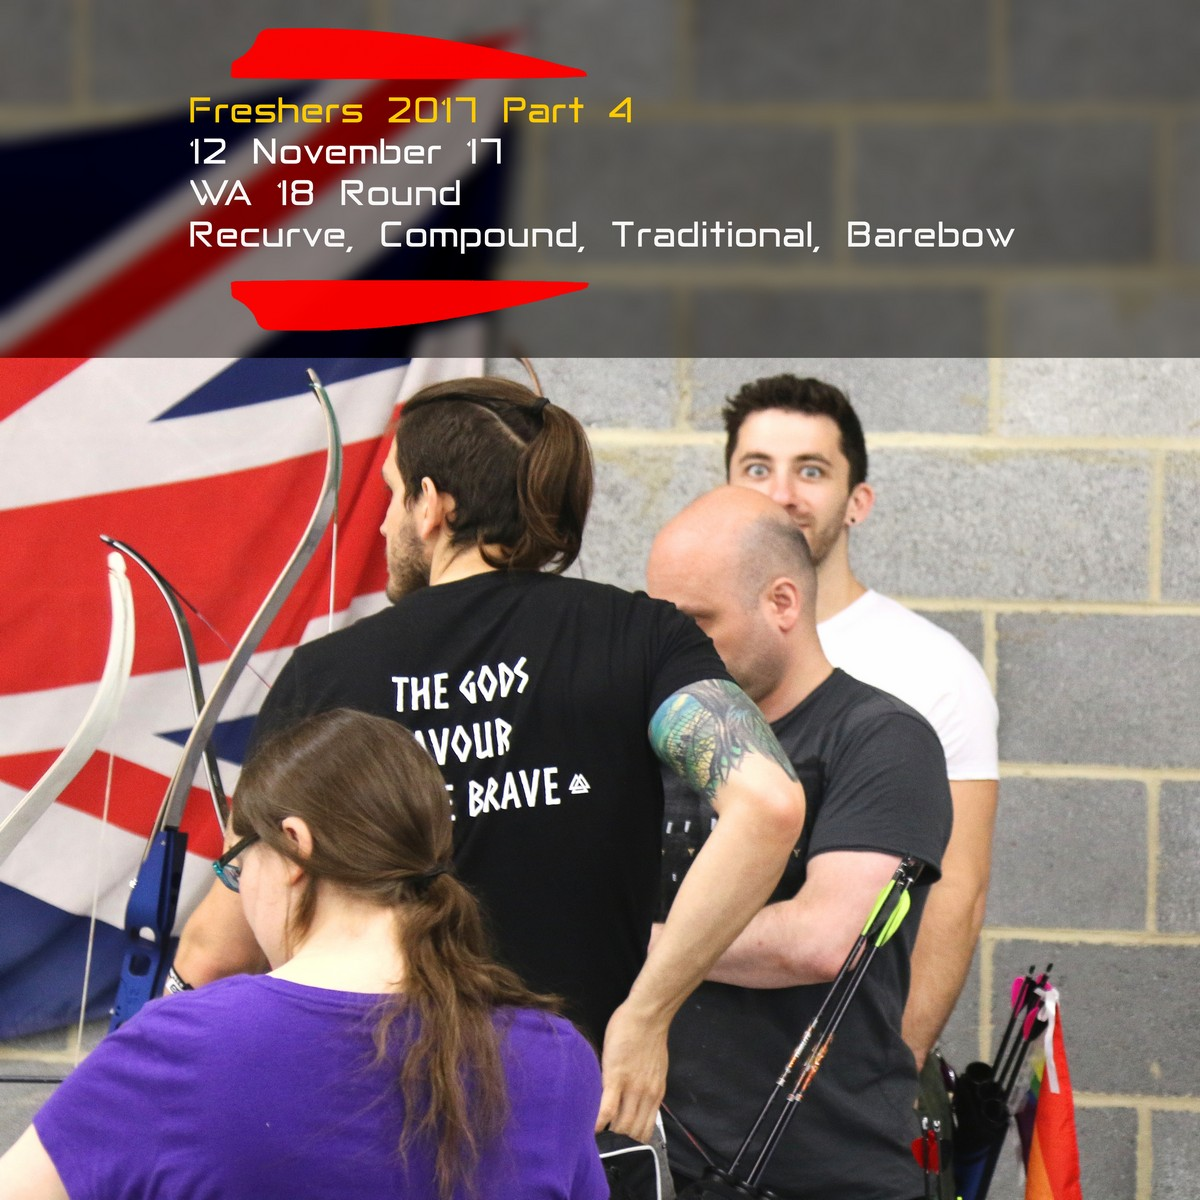 Archery Fit: Freshers 2017 Part 4